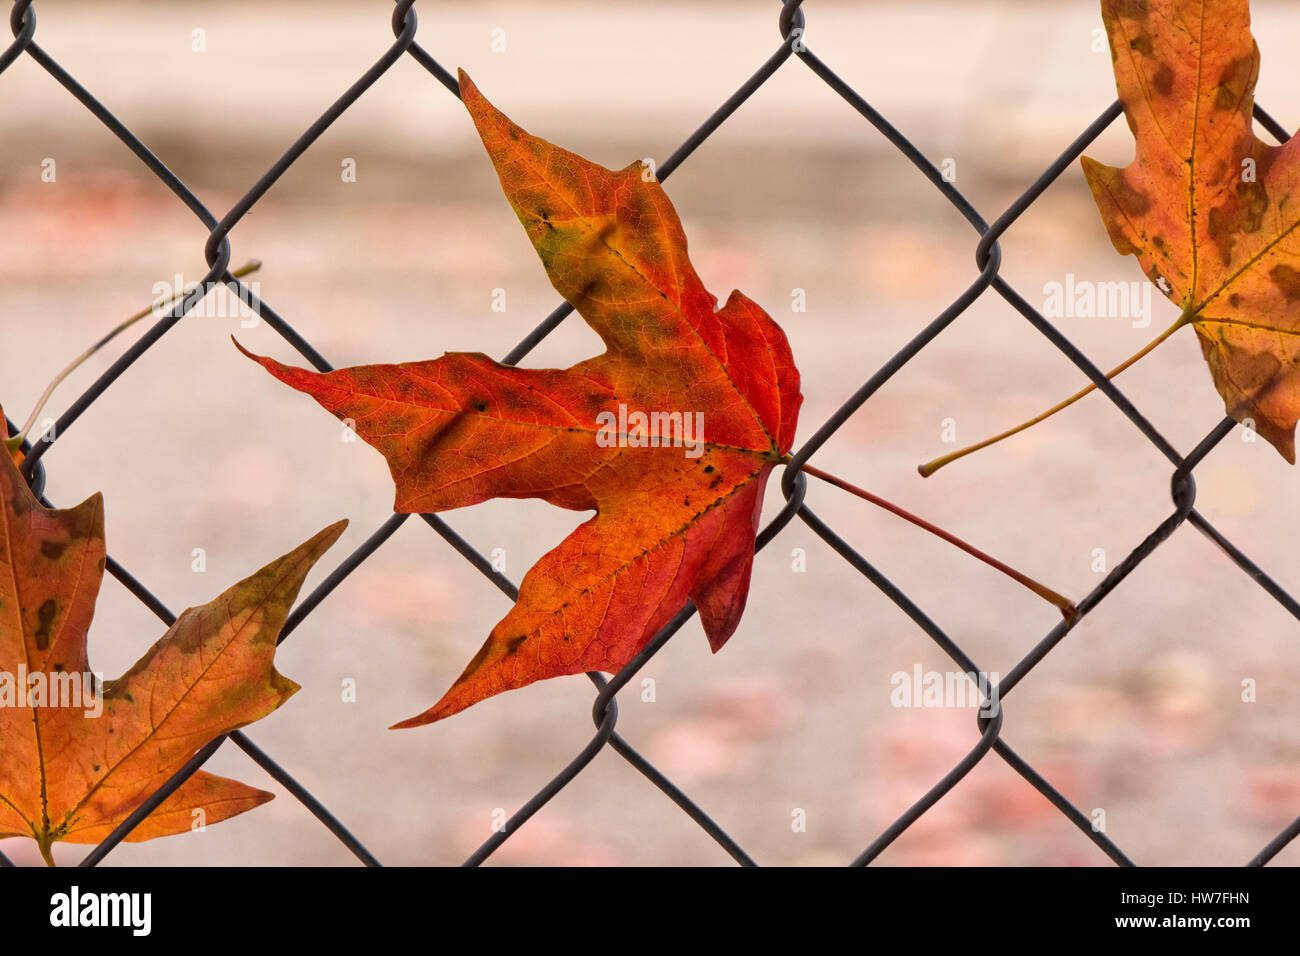 Fall maple leaves caught in wire fence Stock Photo, Royalty Free ...